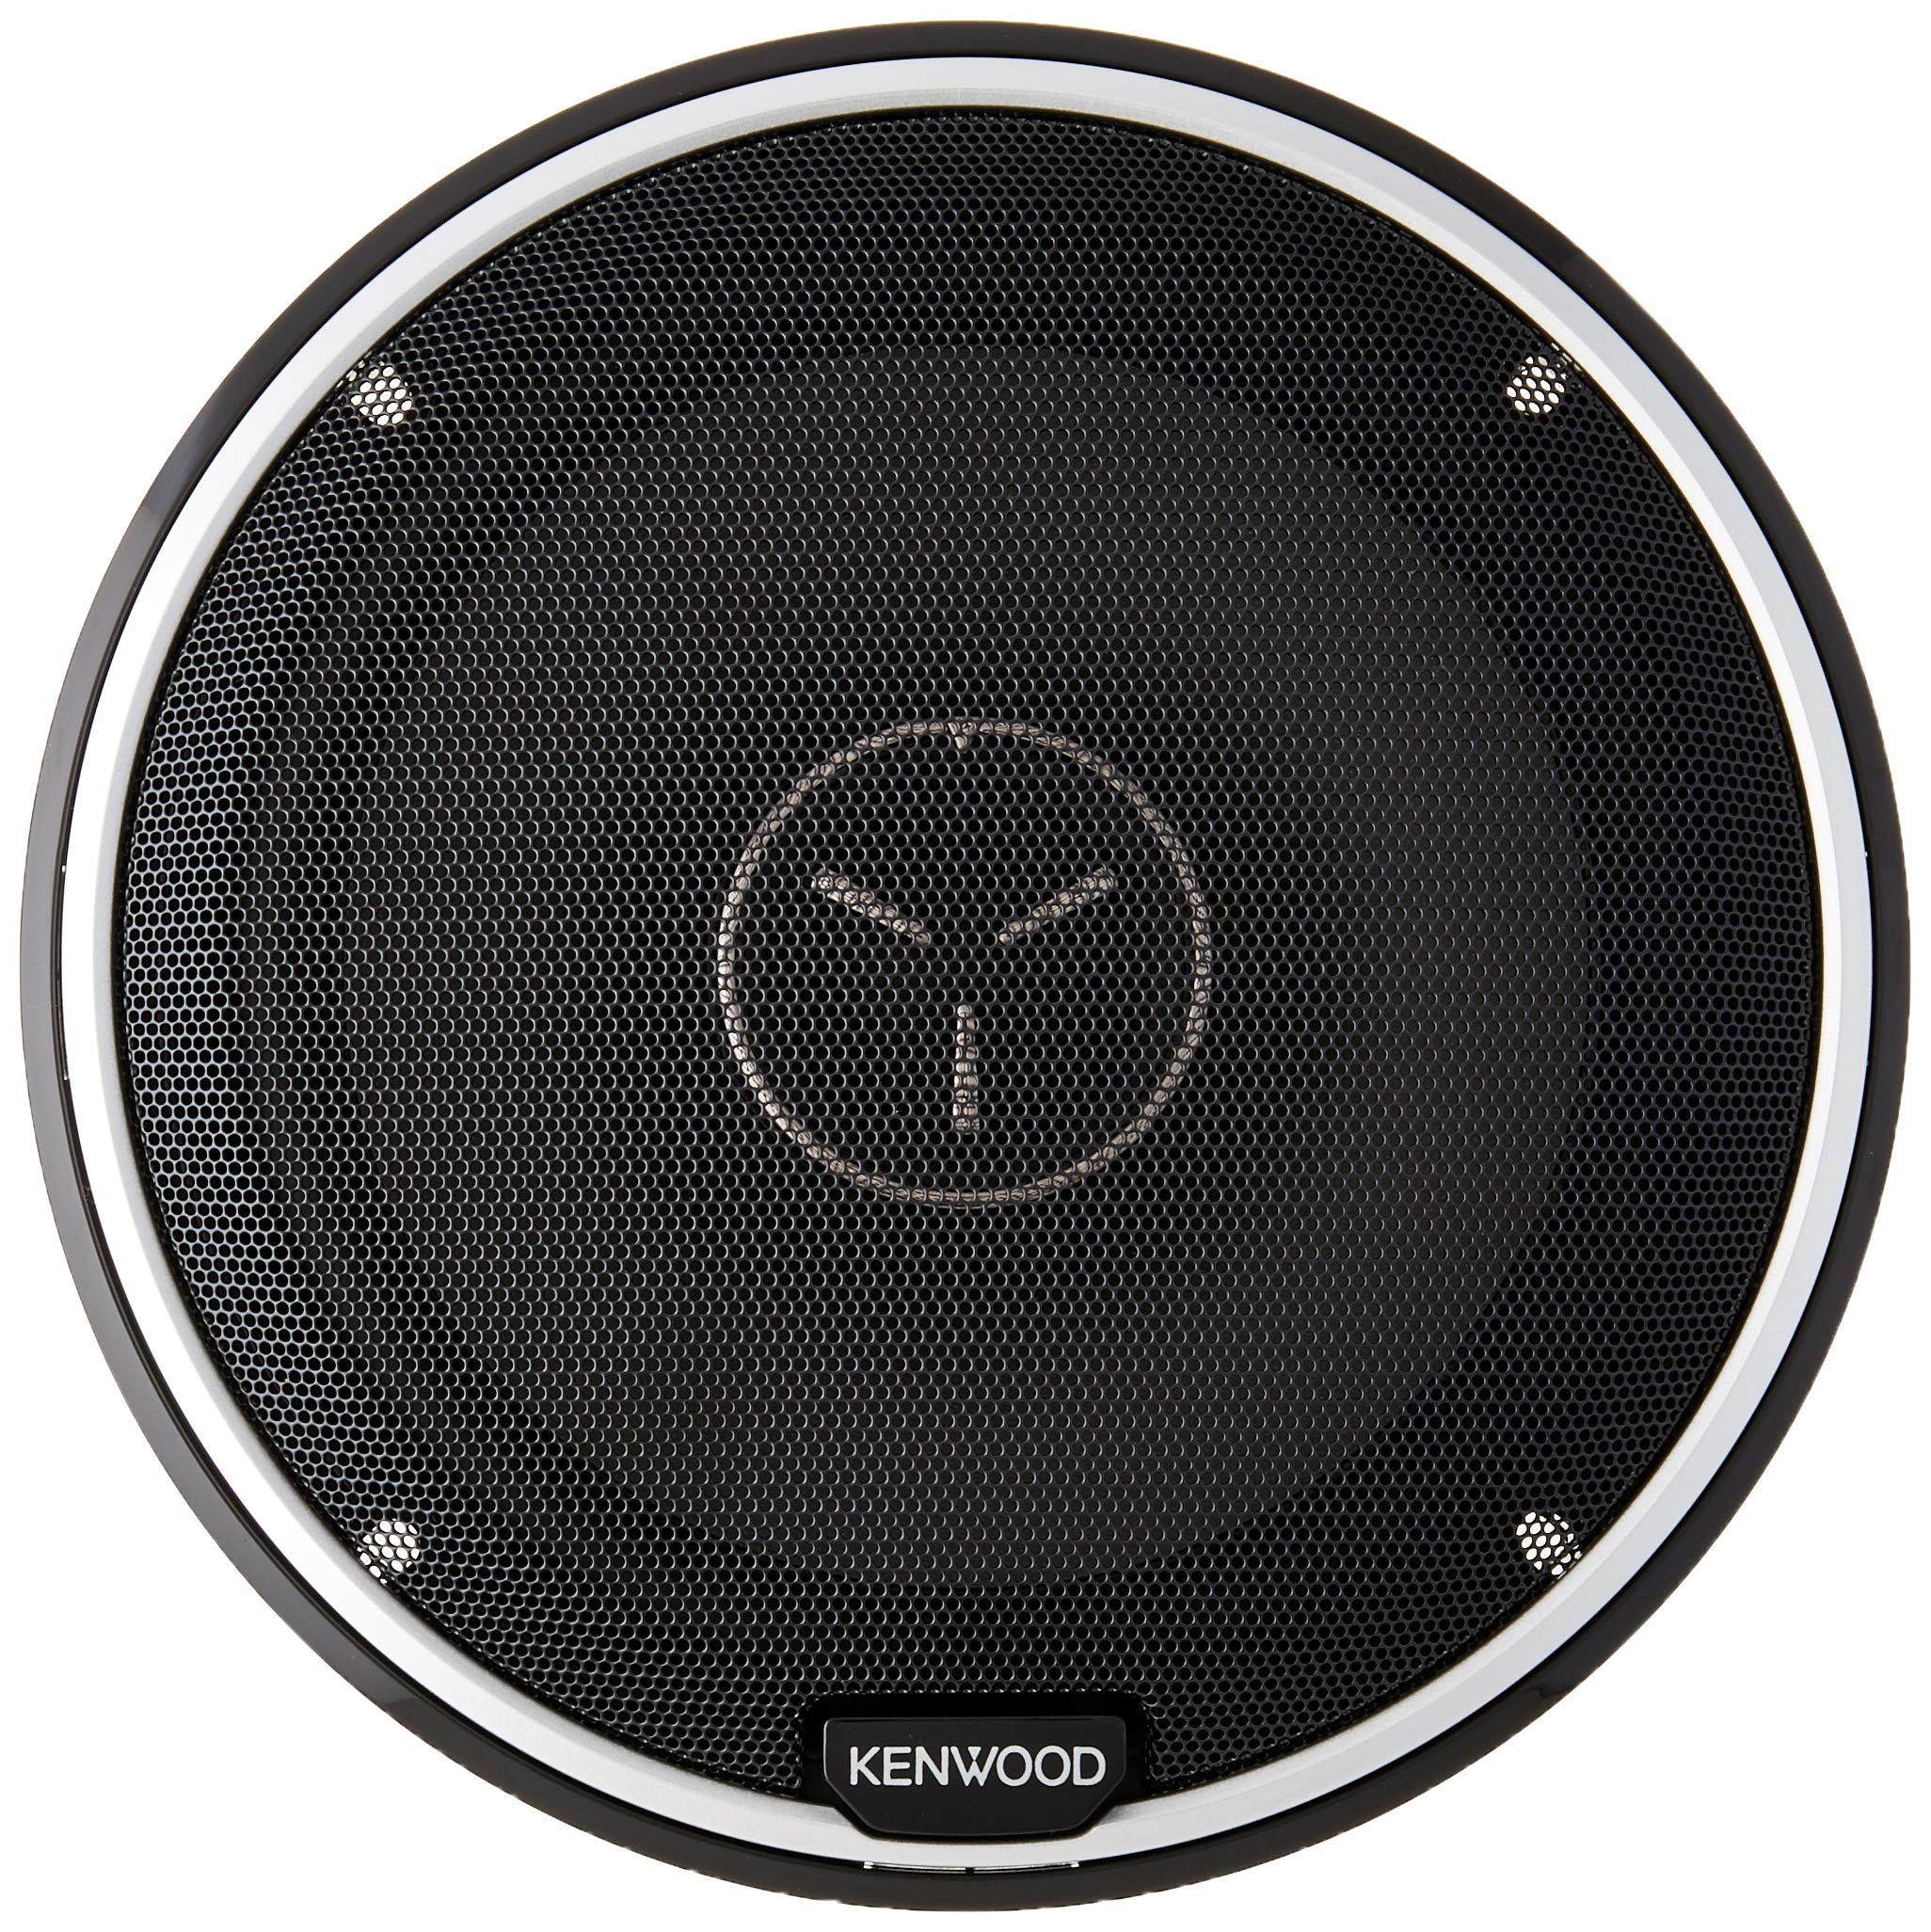 Kenwood KFCX174 Excelon 80W RMS speakers